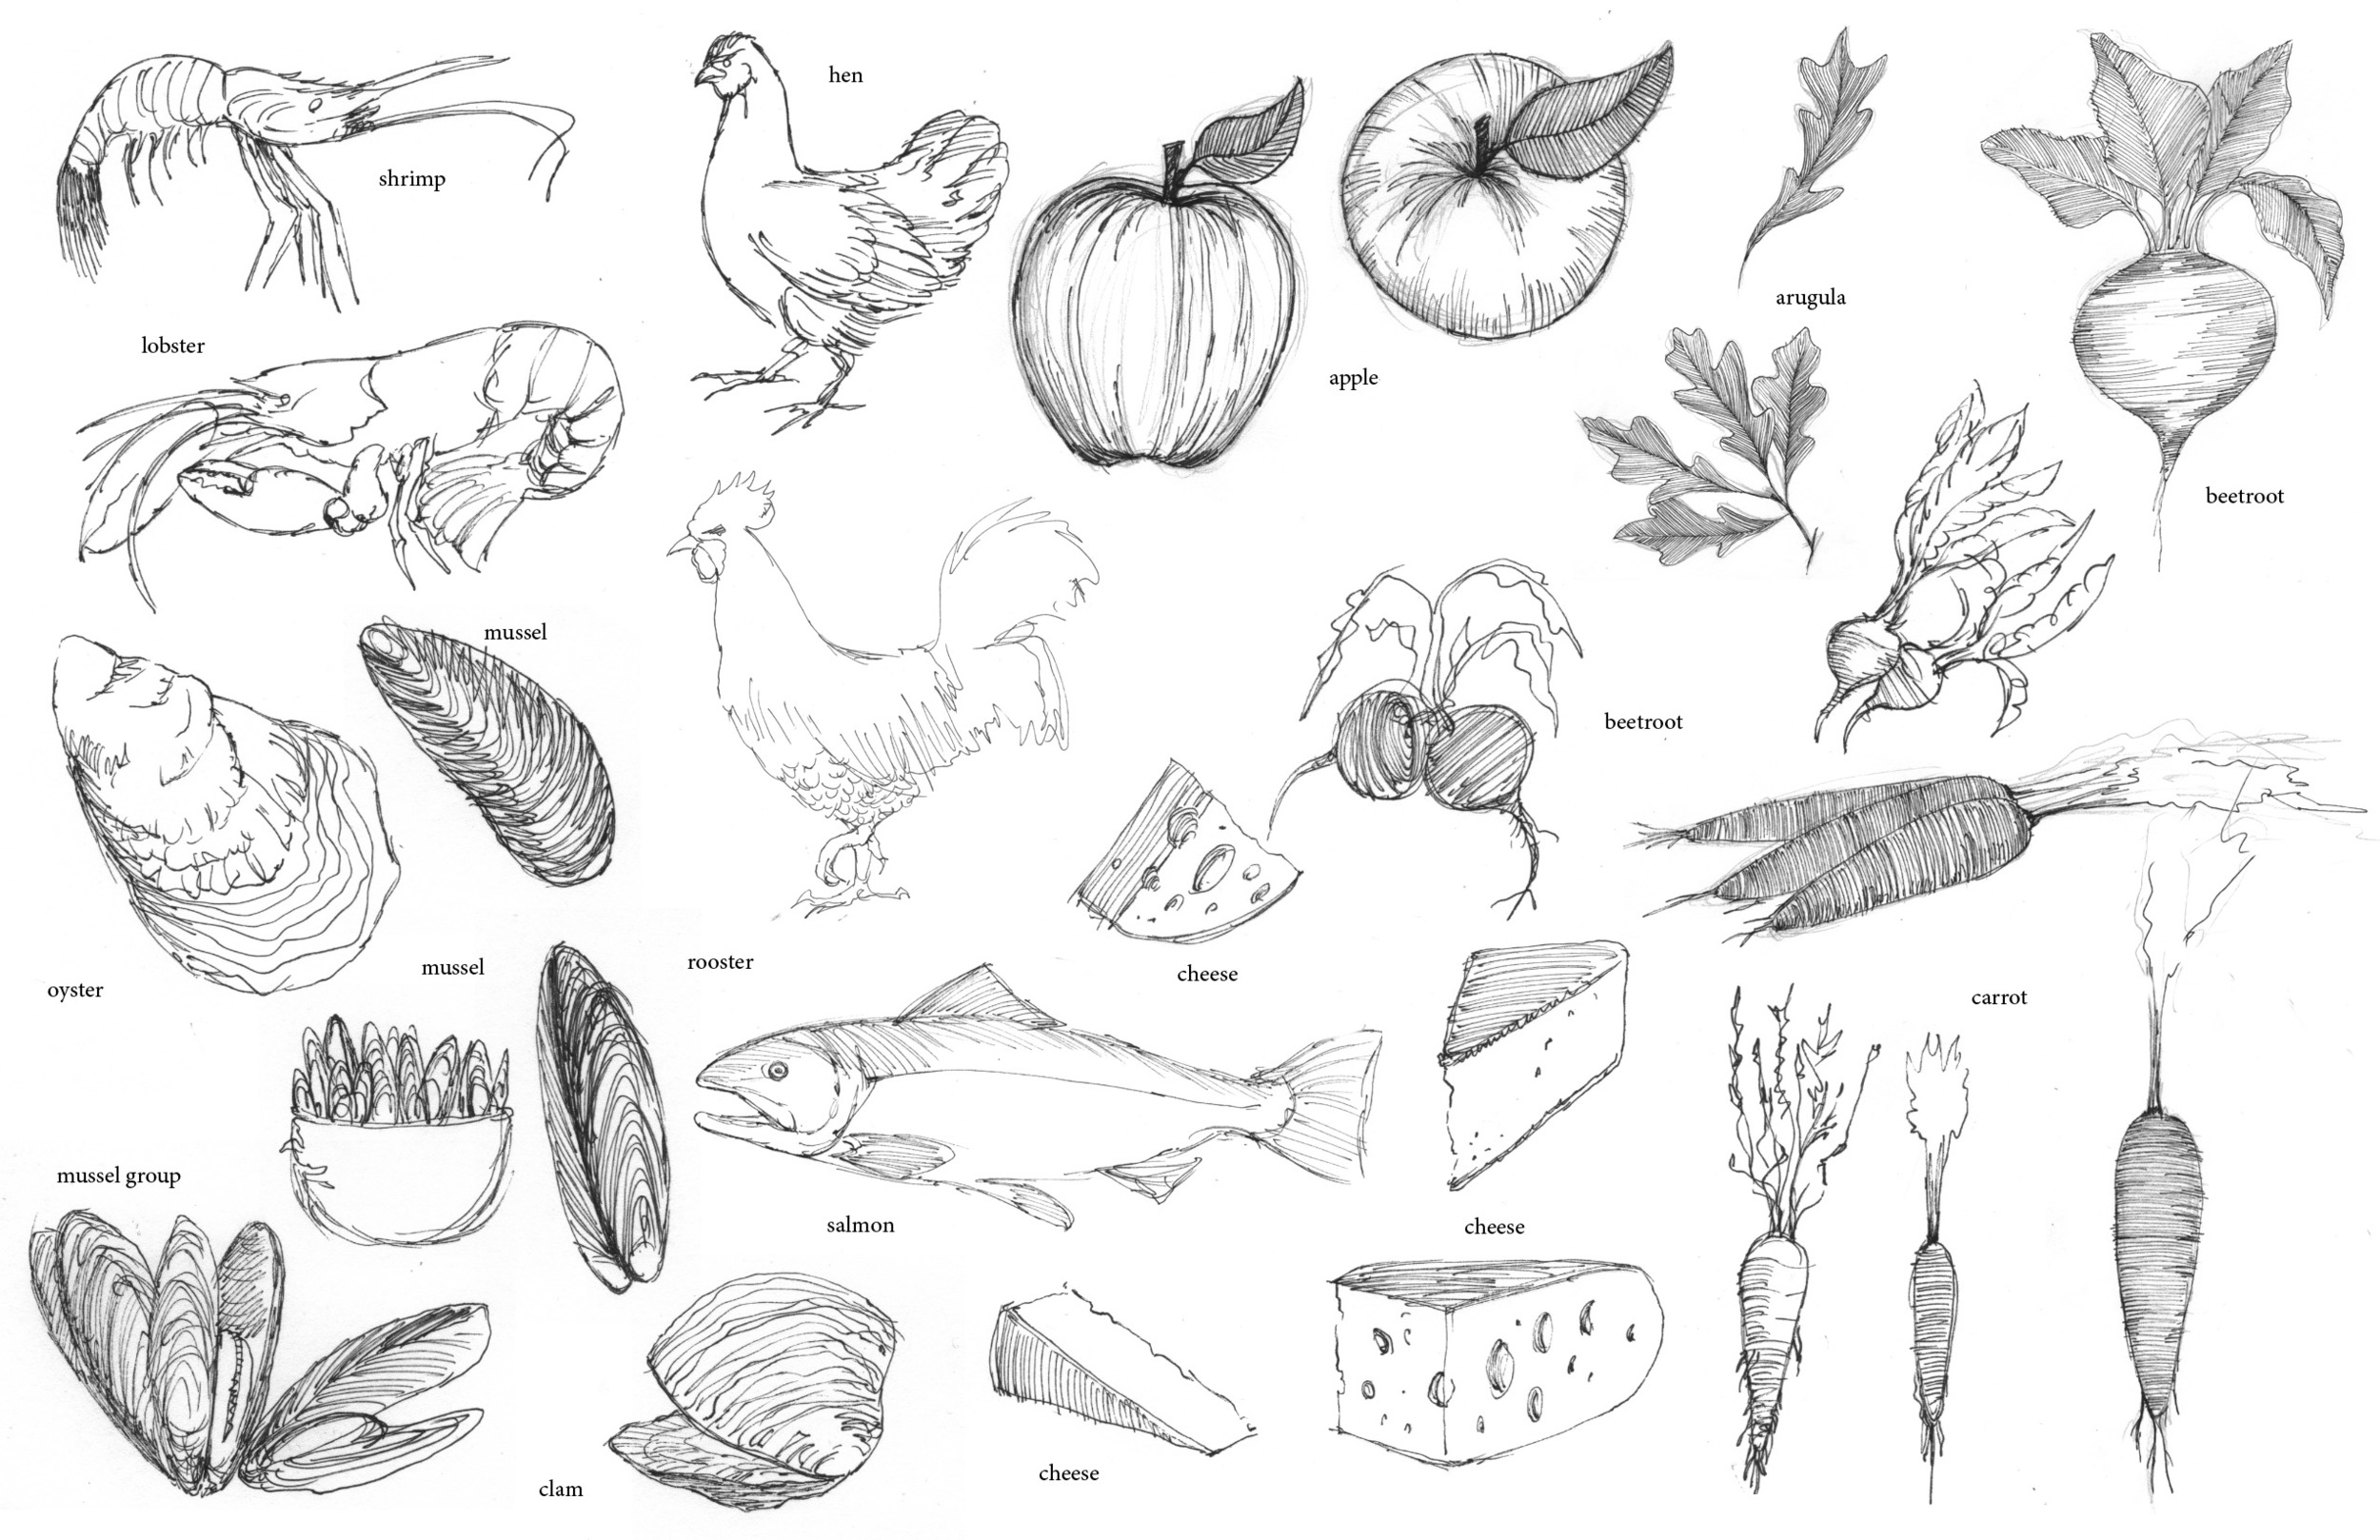 Rough Sketches for restaurant menu illustrations.